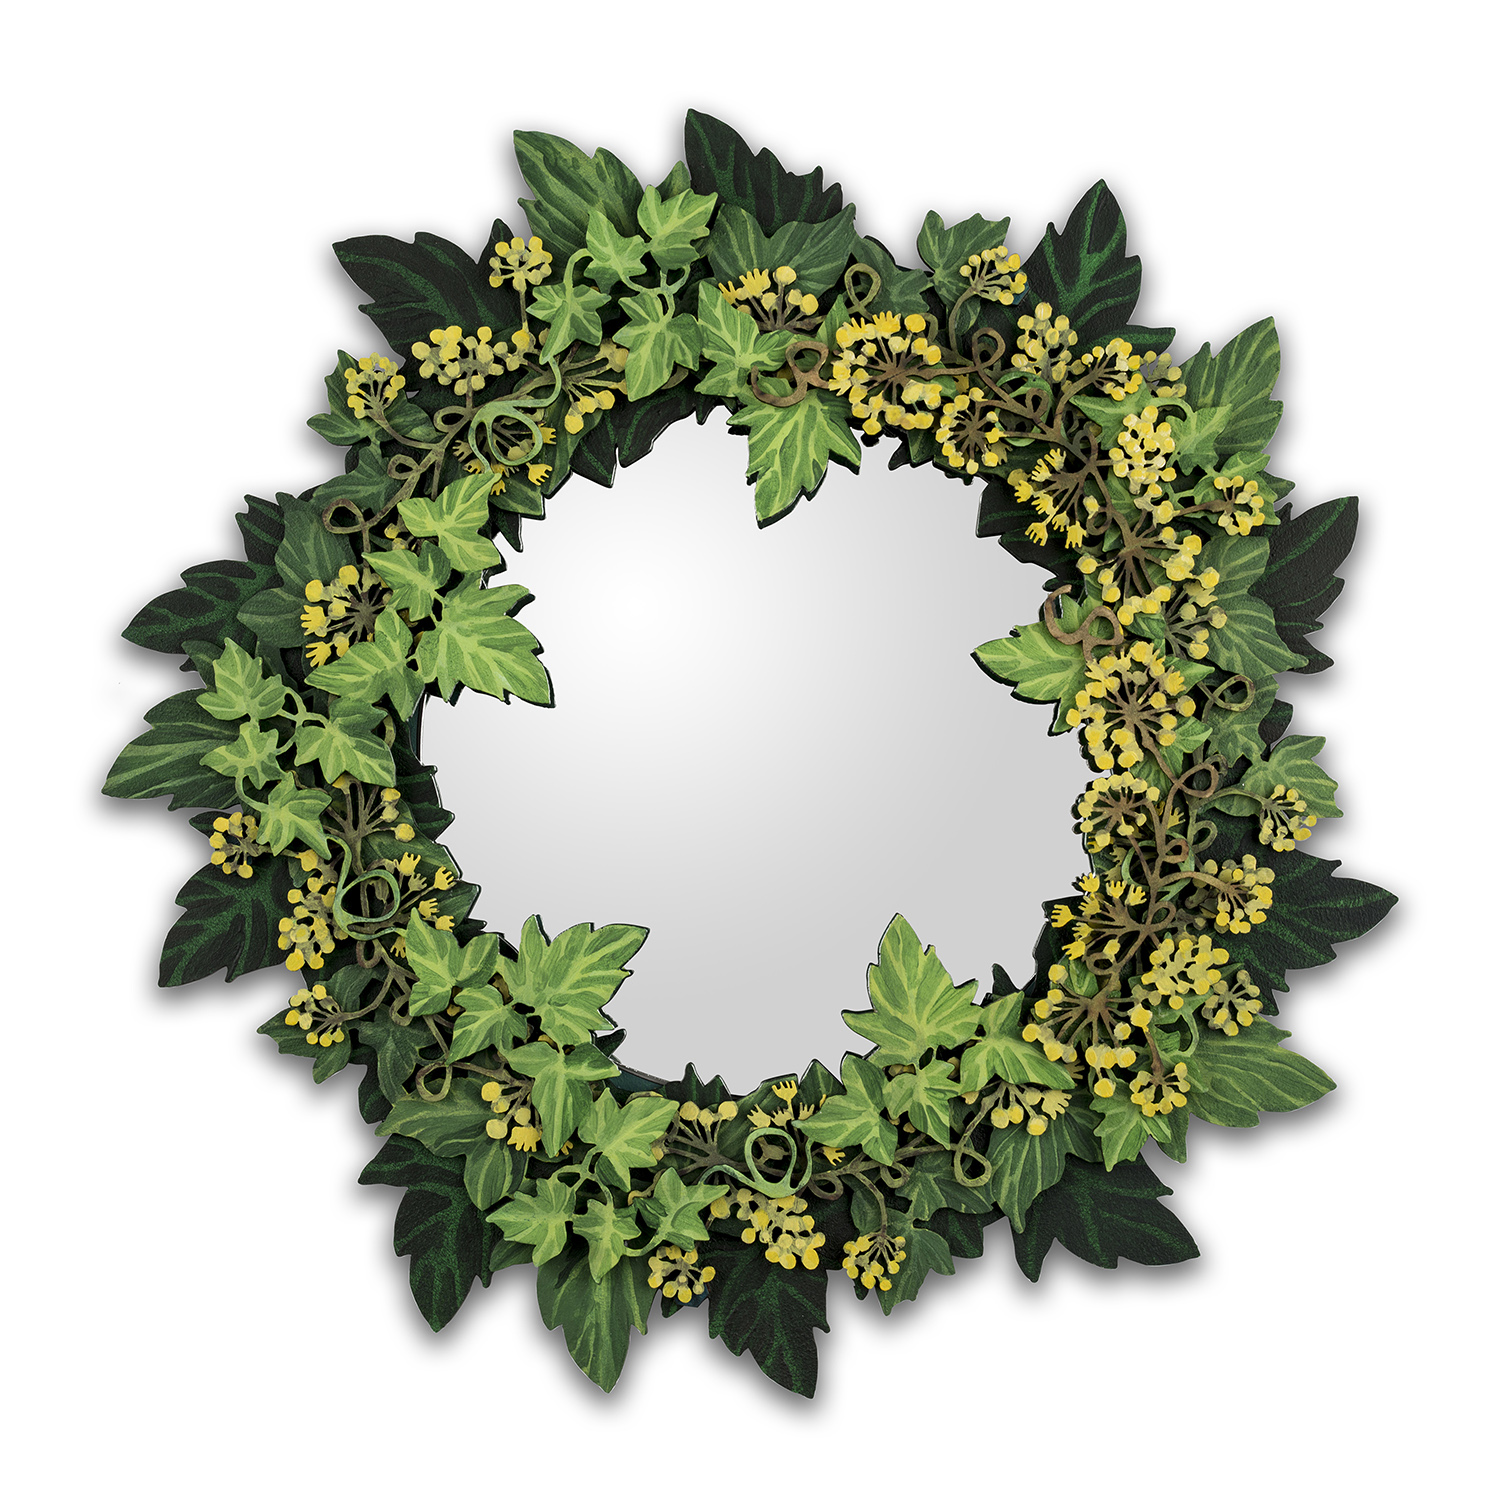 Lasercut handpainted ivy mirror 34cm x 34cm picture by Jo Hounsome